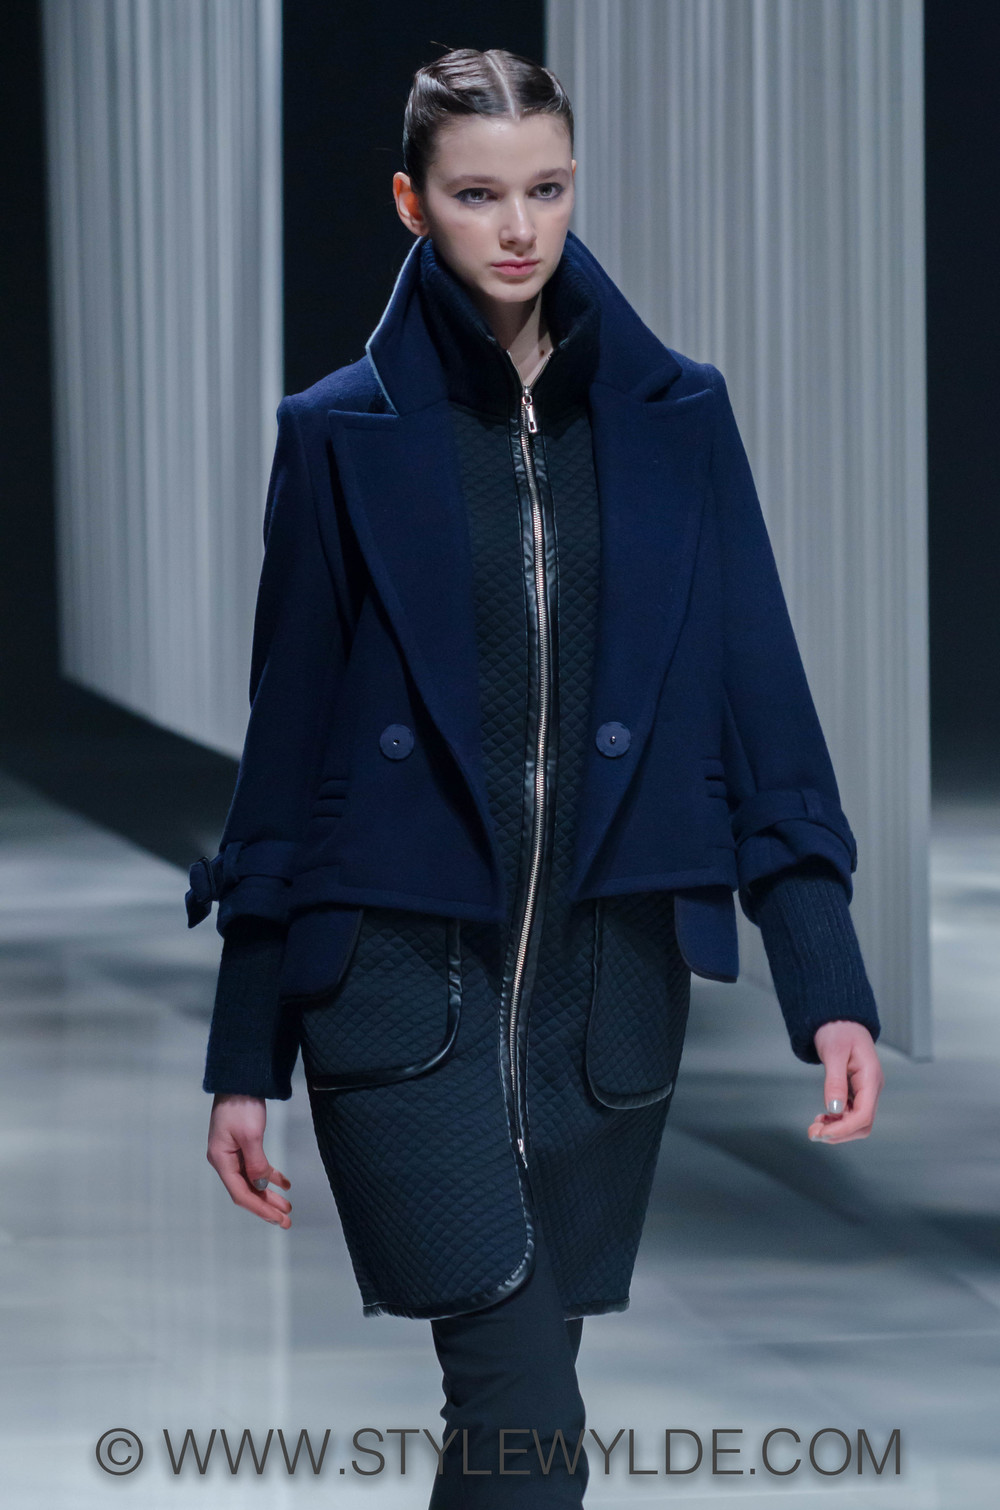 StyleWylde_Ujoh_AW14_story (1 of 1)-7.jpg